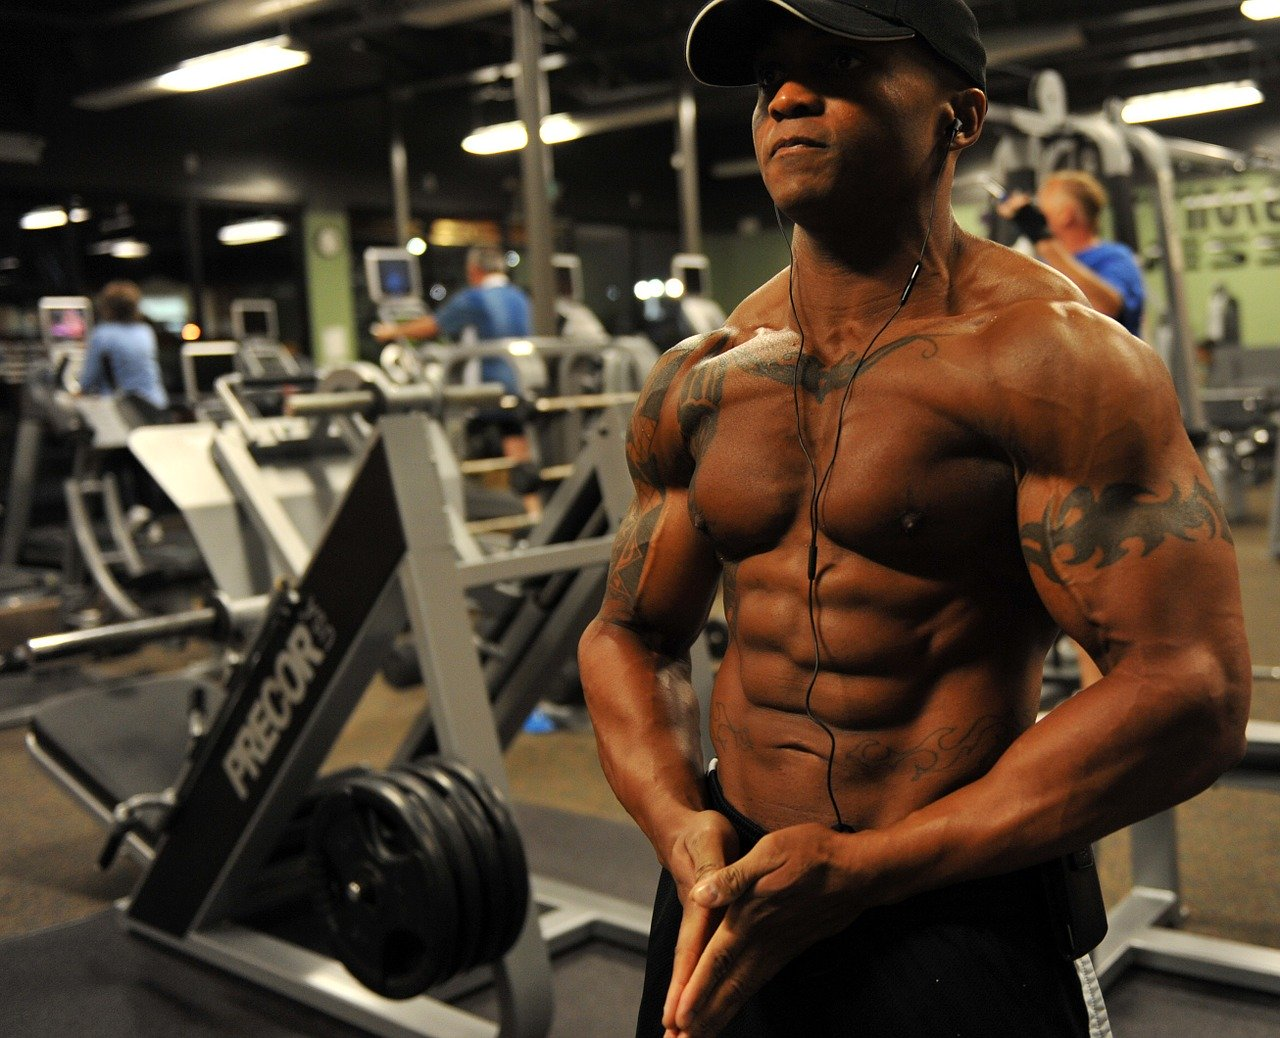 bodybuilder can't gain weight no matter how much I eat